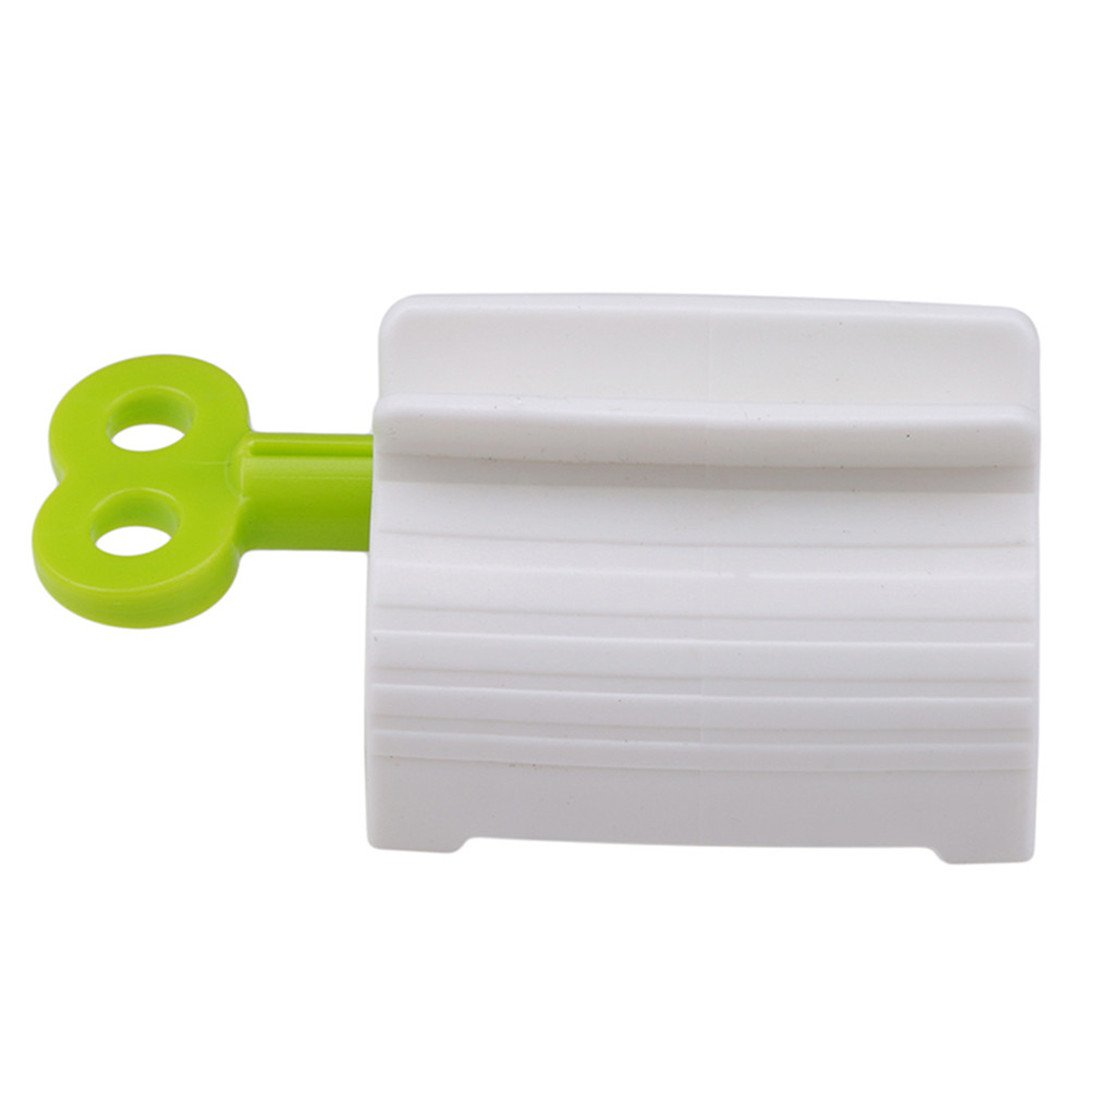 Edtoy 1PCS Creative Manual Rolling Toothpaste Dispenser Tube Squeezer Toothpaste Clip Holder (green)